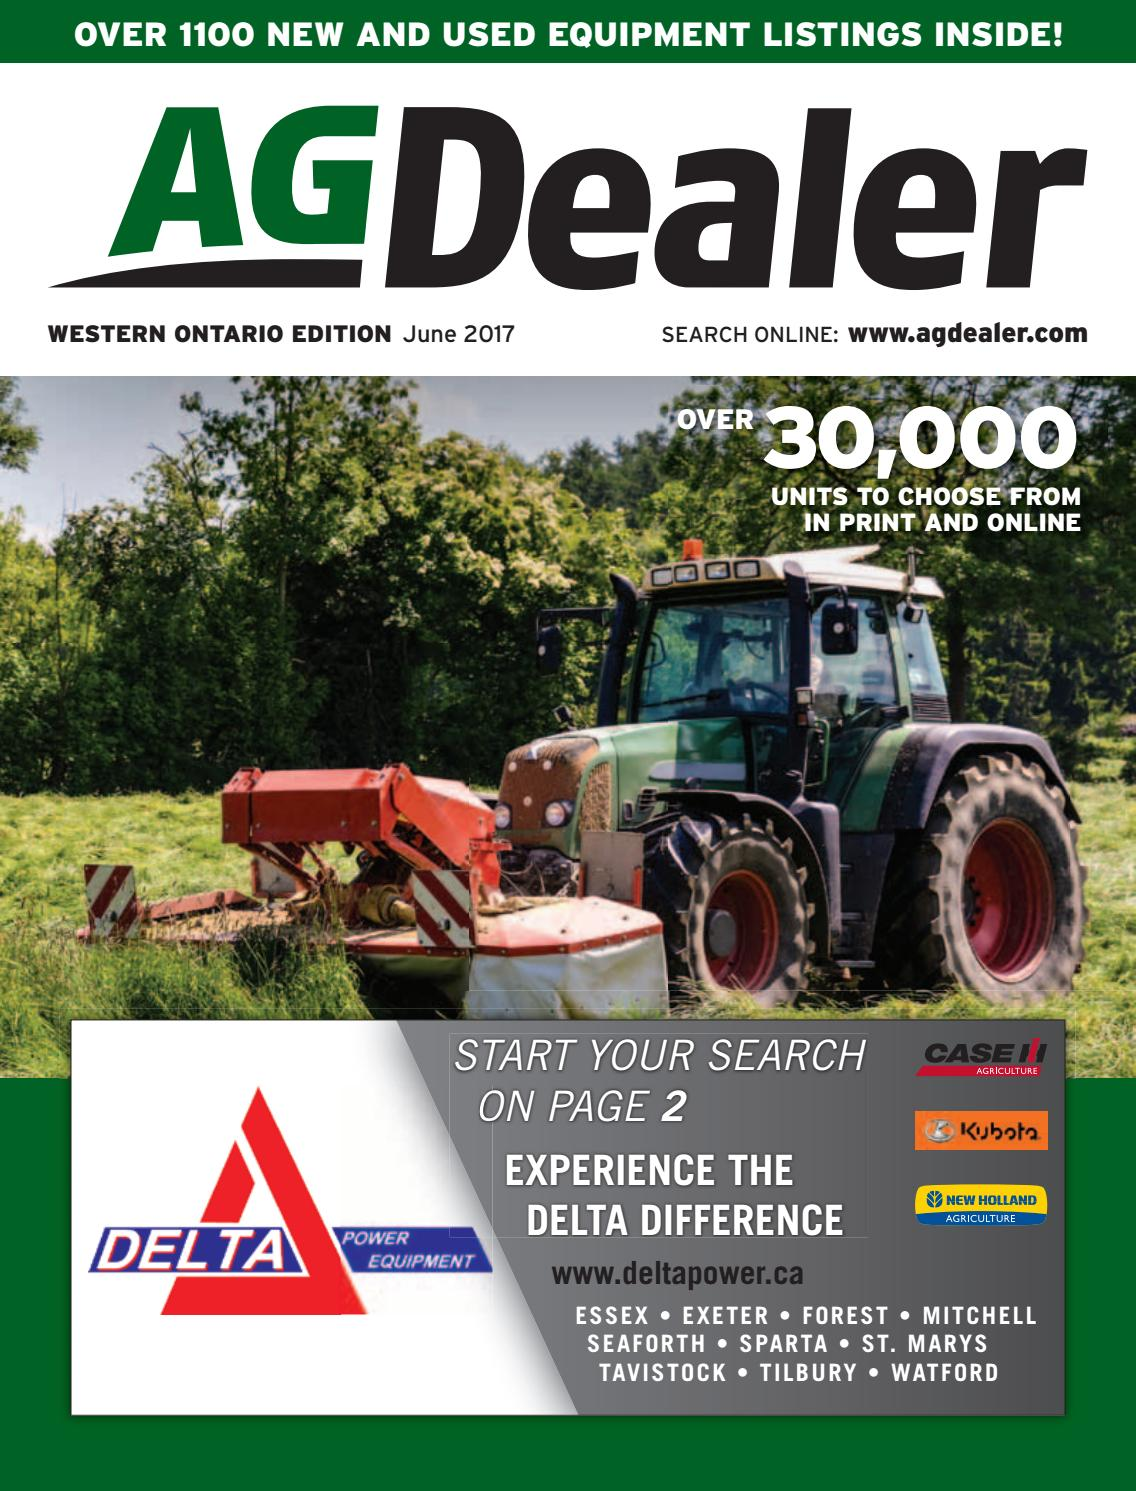 AGDealer Western Ontario Edition, June 2017 by Farm Business Communications  - issuu